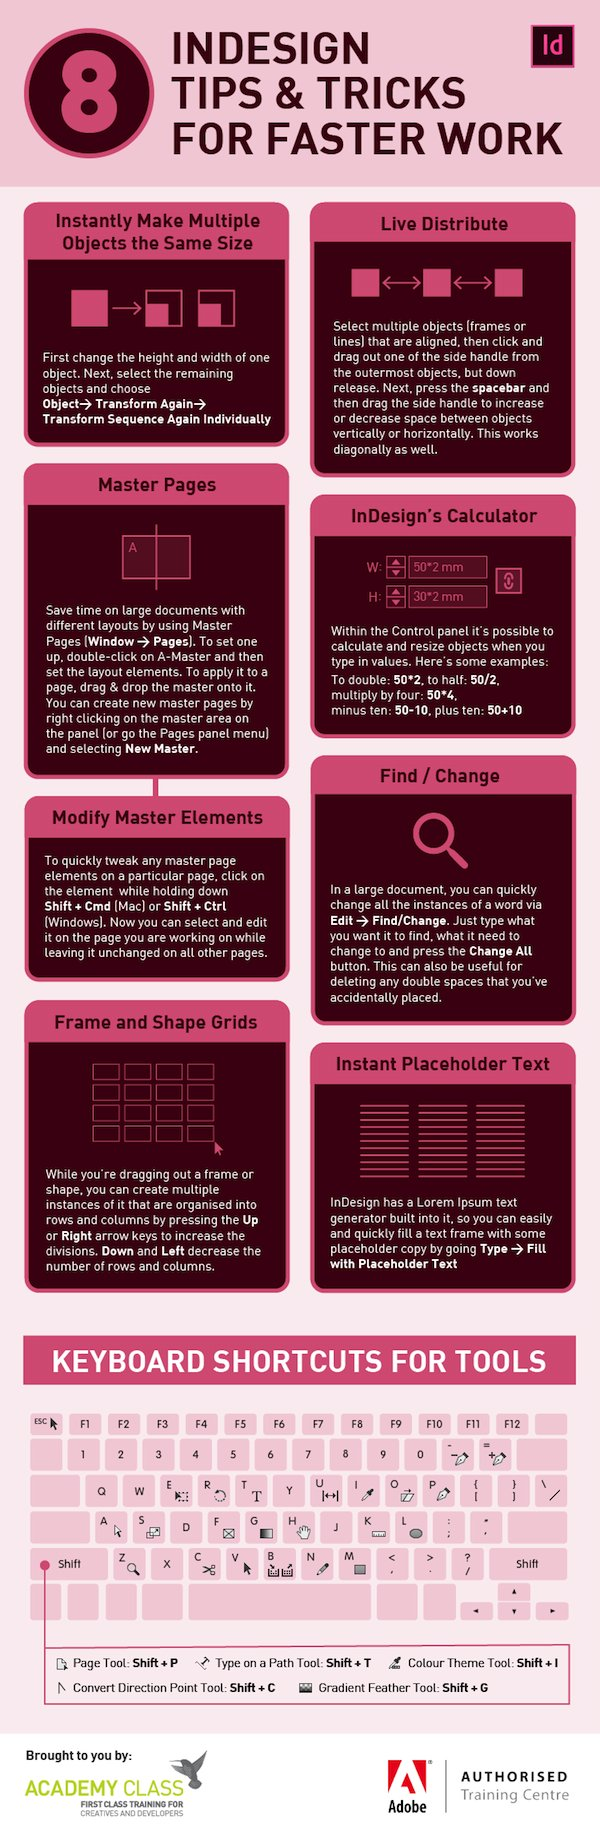 Power through your @InDesign projects with these time-saving tips. https://t.co/ahskgegKDQ